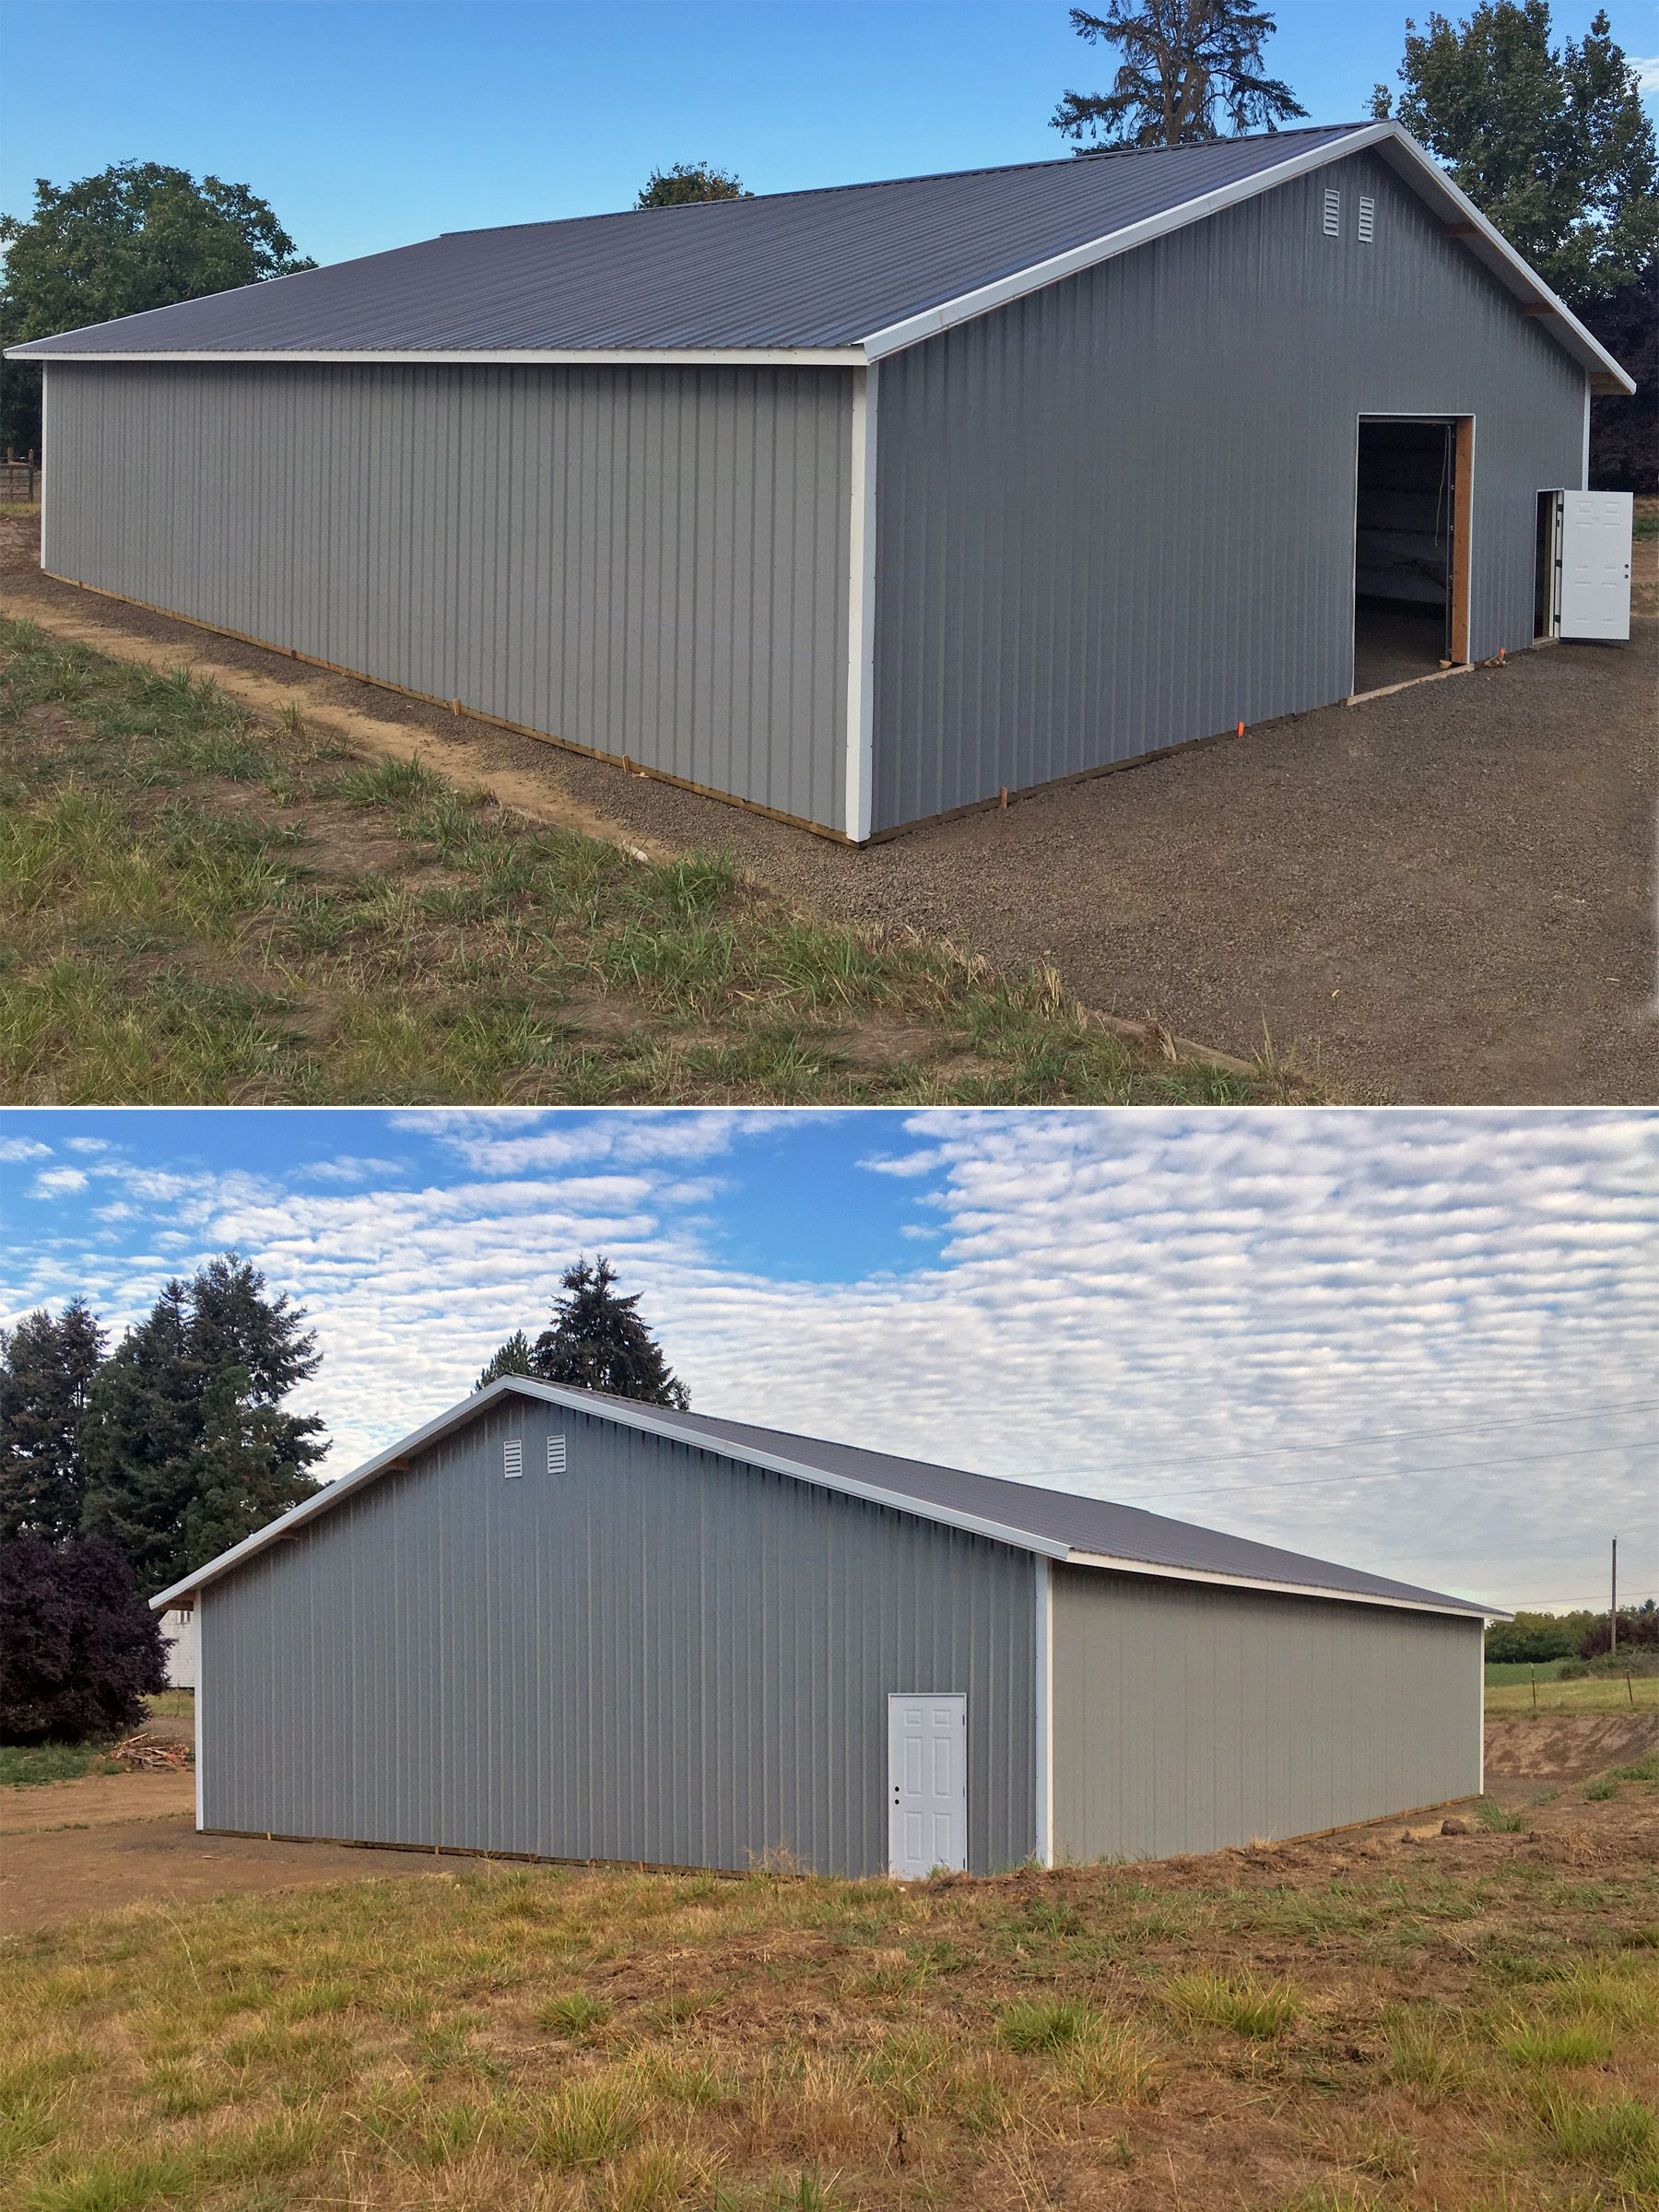 48 X 60 12 Agricultural Building With Overhead Door Walk In Door Gable Vents And Overhang Agricultural Buildings Pole Barn Construction Pole Buildings